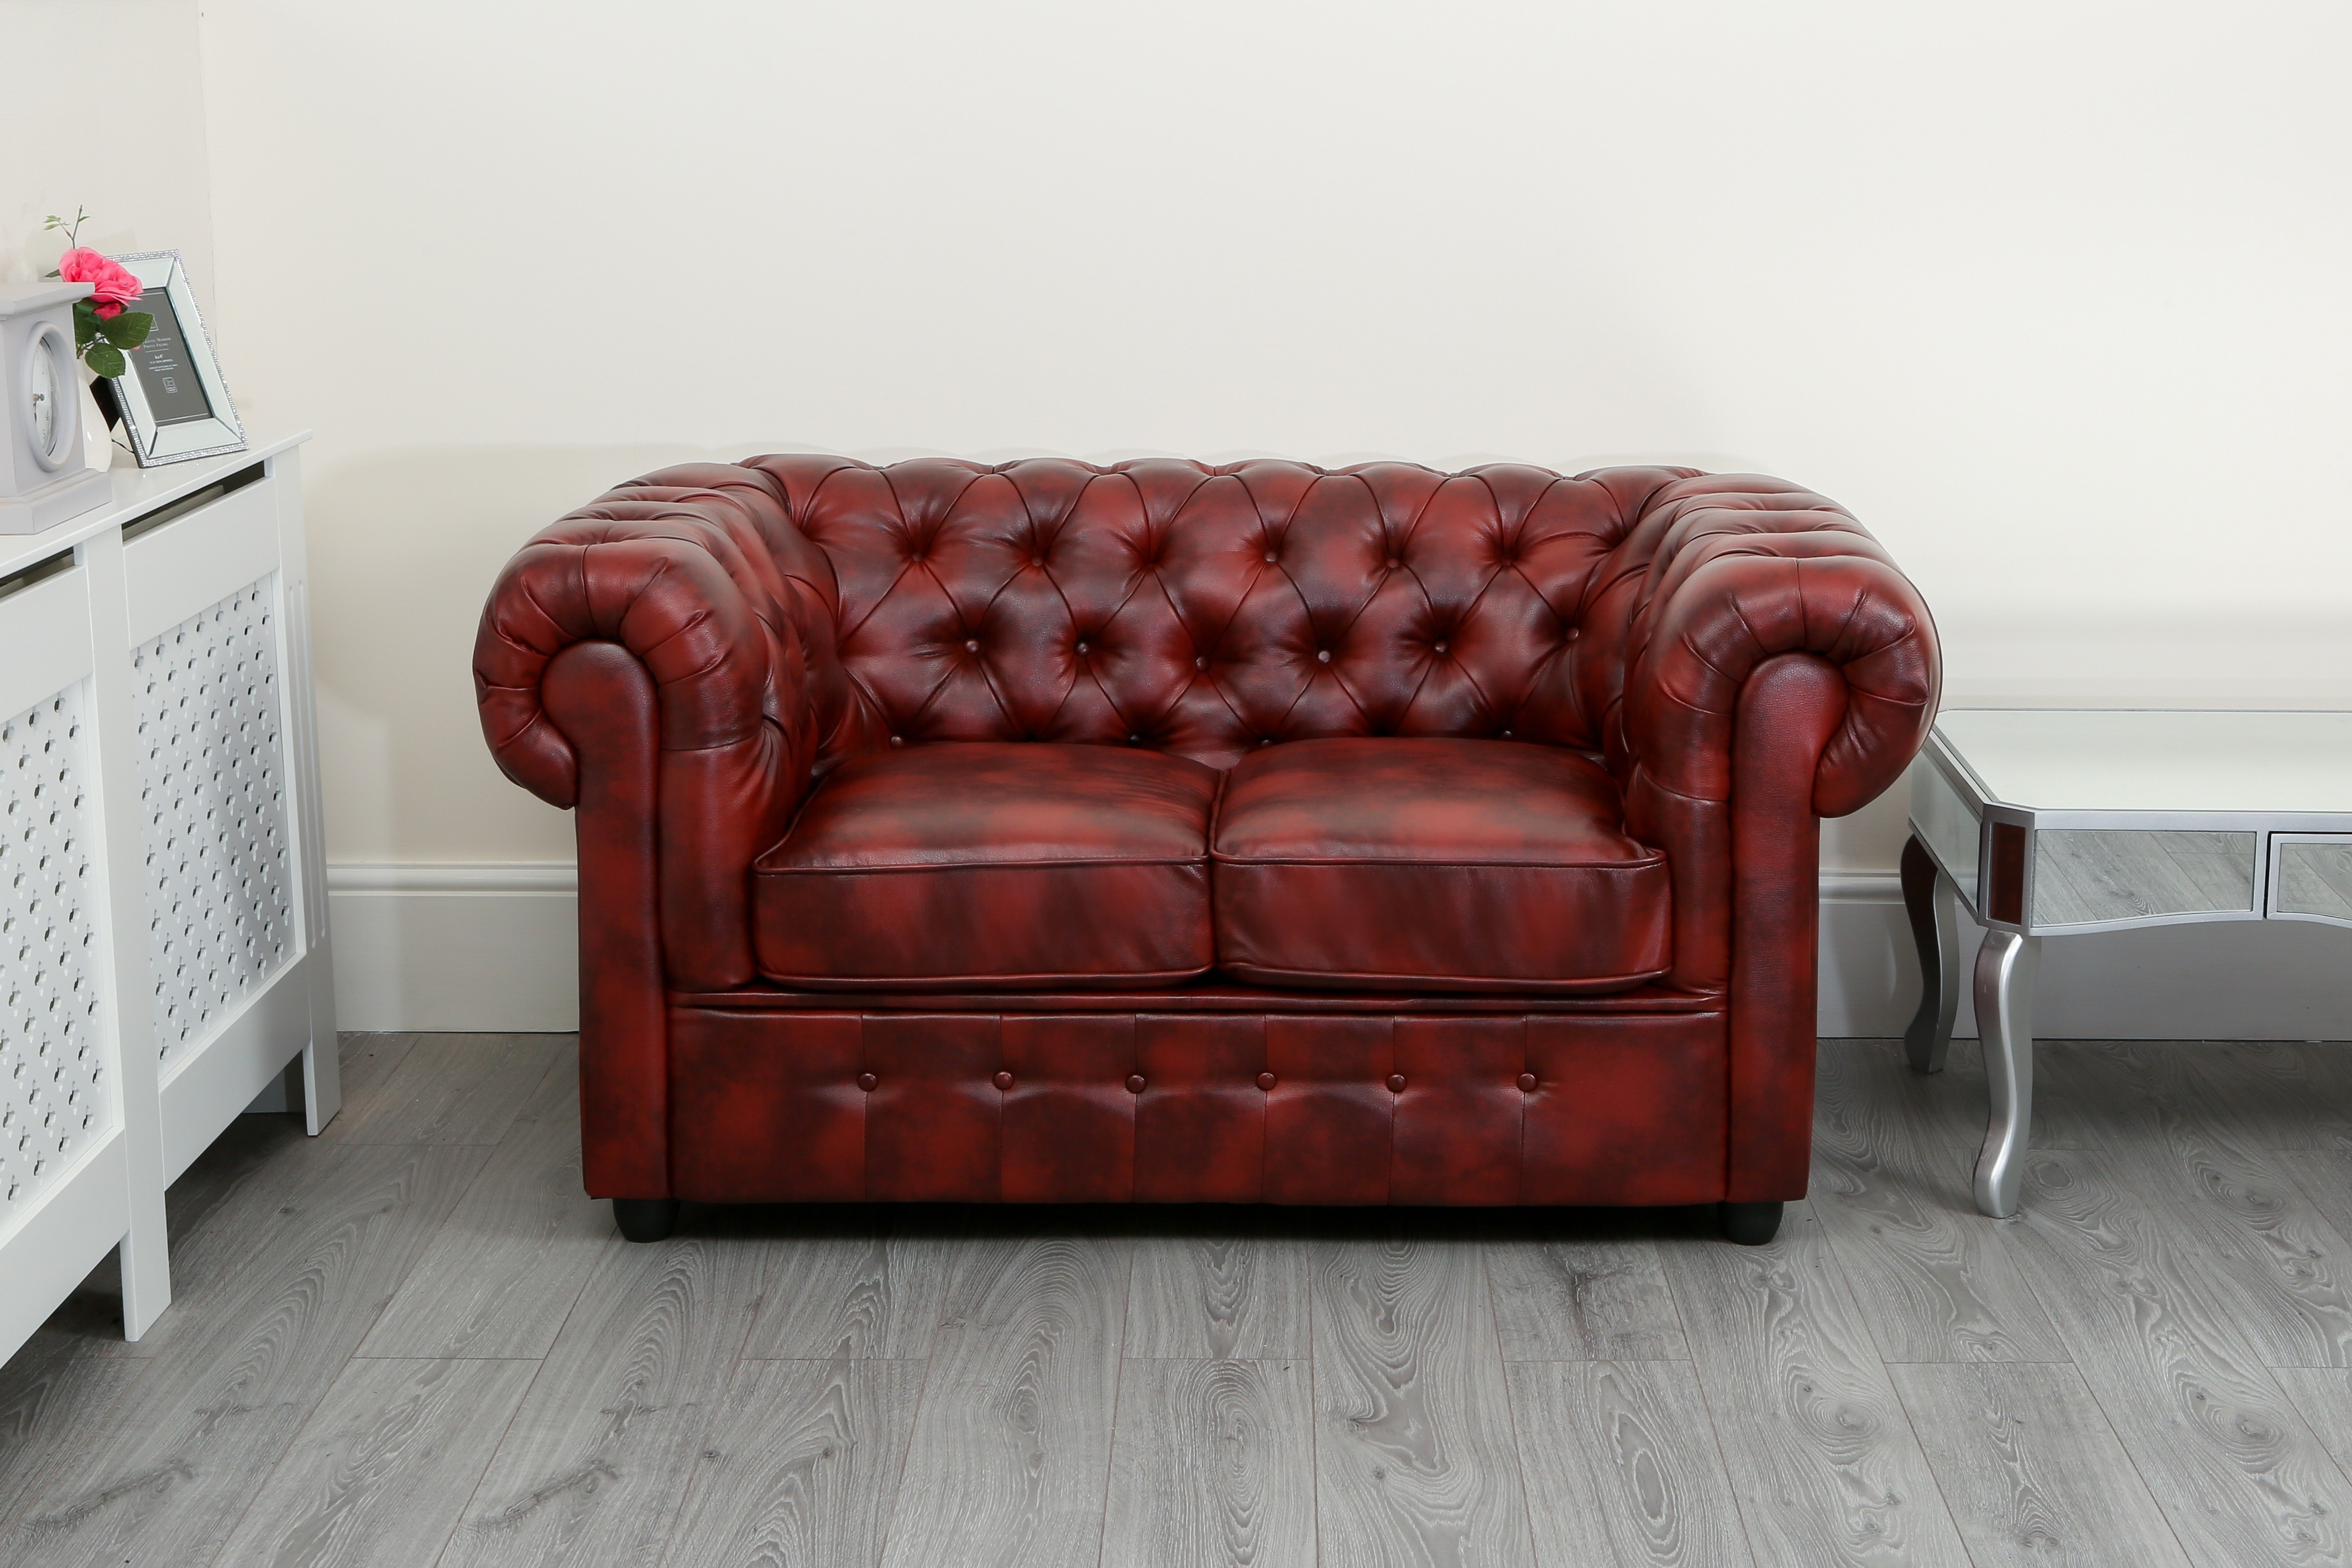 6 Seater Corner Sofa Chesterfield Oxblood Red Chesterfield 2 Seater Abreo Home Furniture